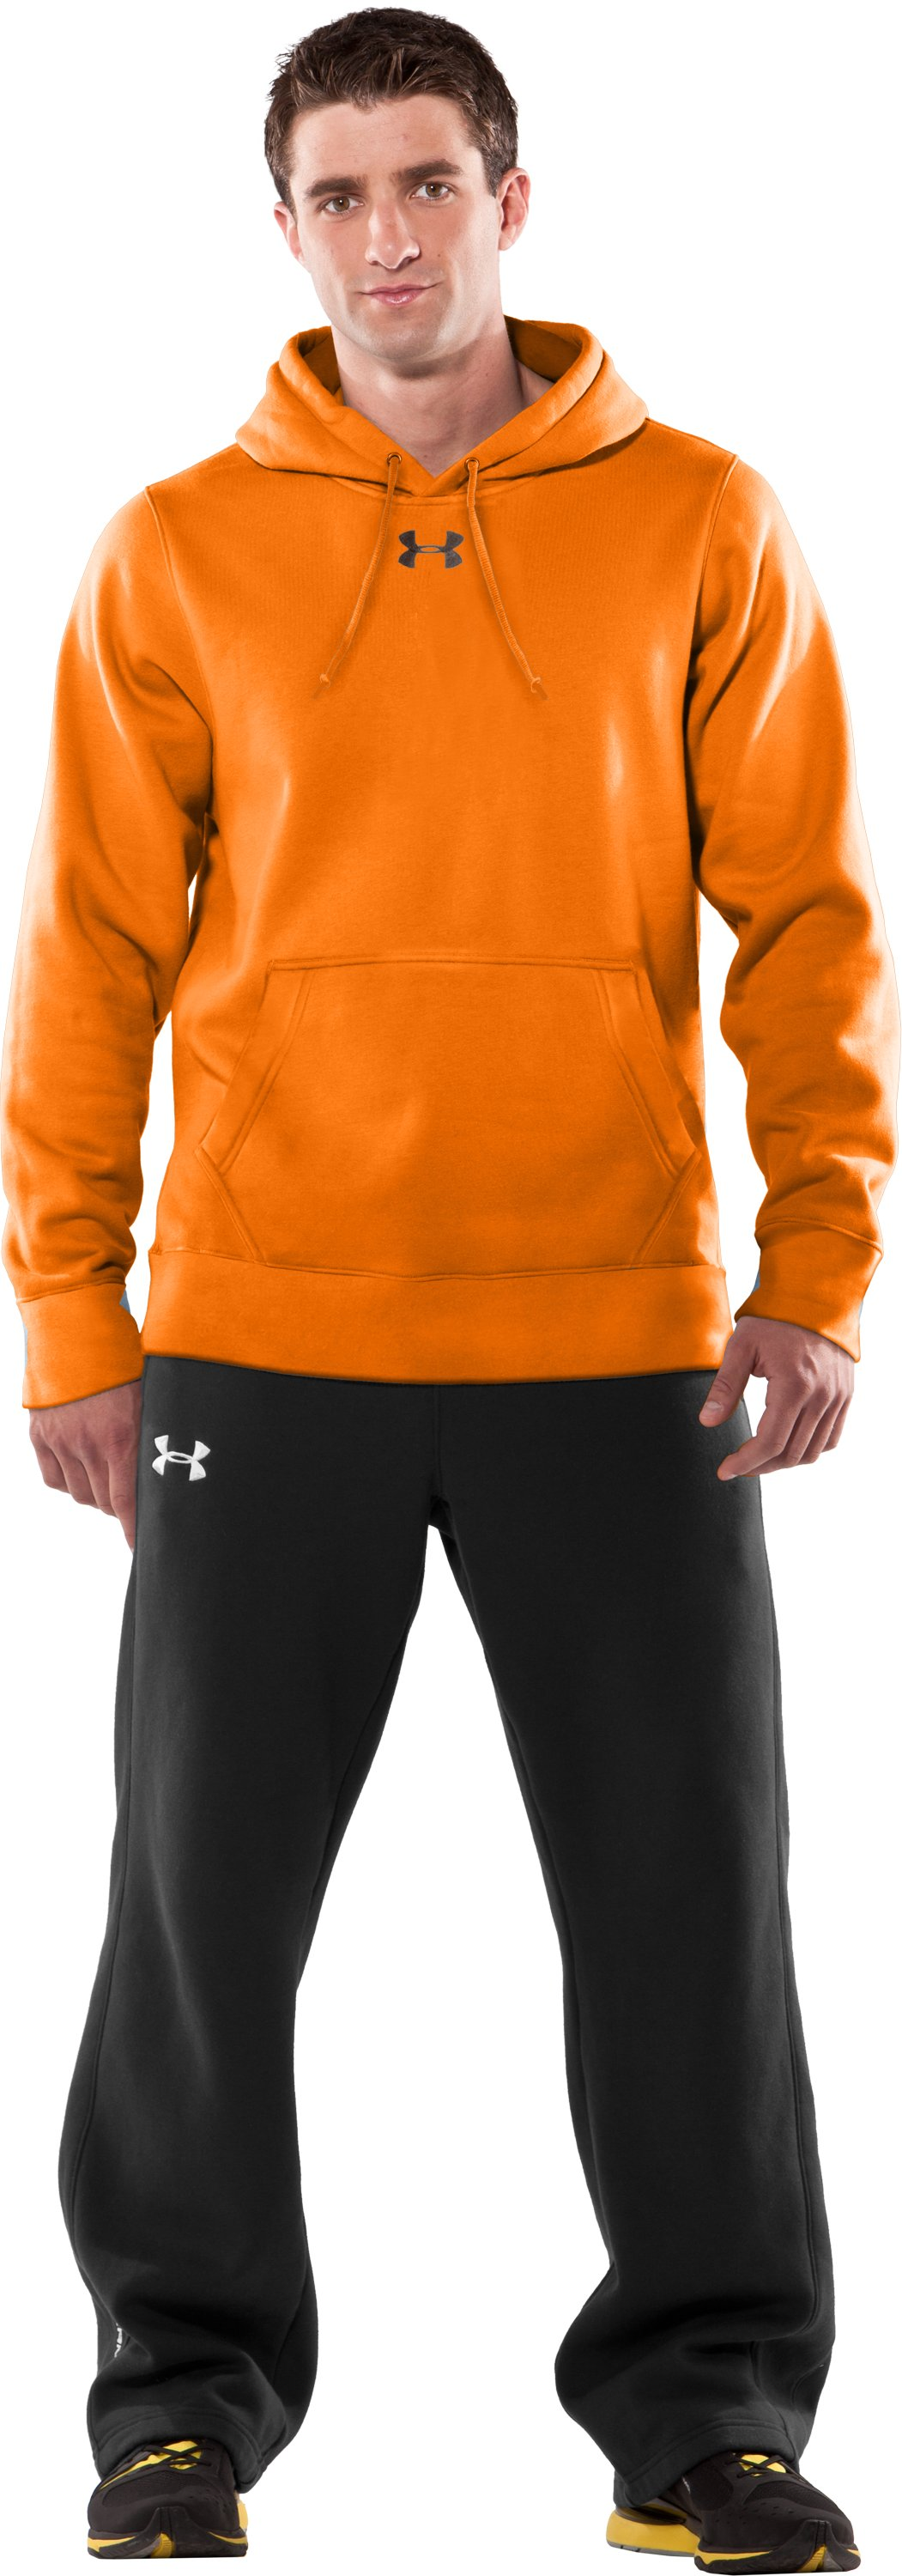 Men's Armour® Fleece Blaze Hoodie, Blaze Orange